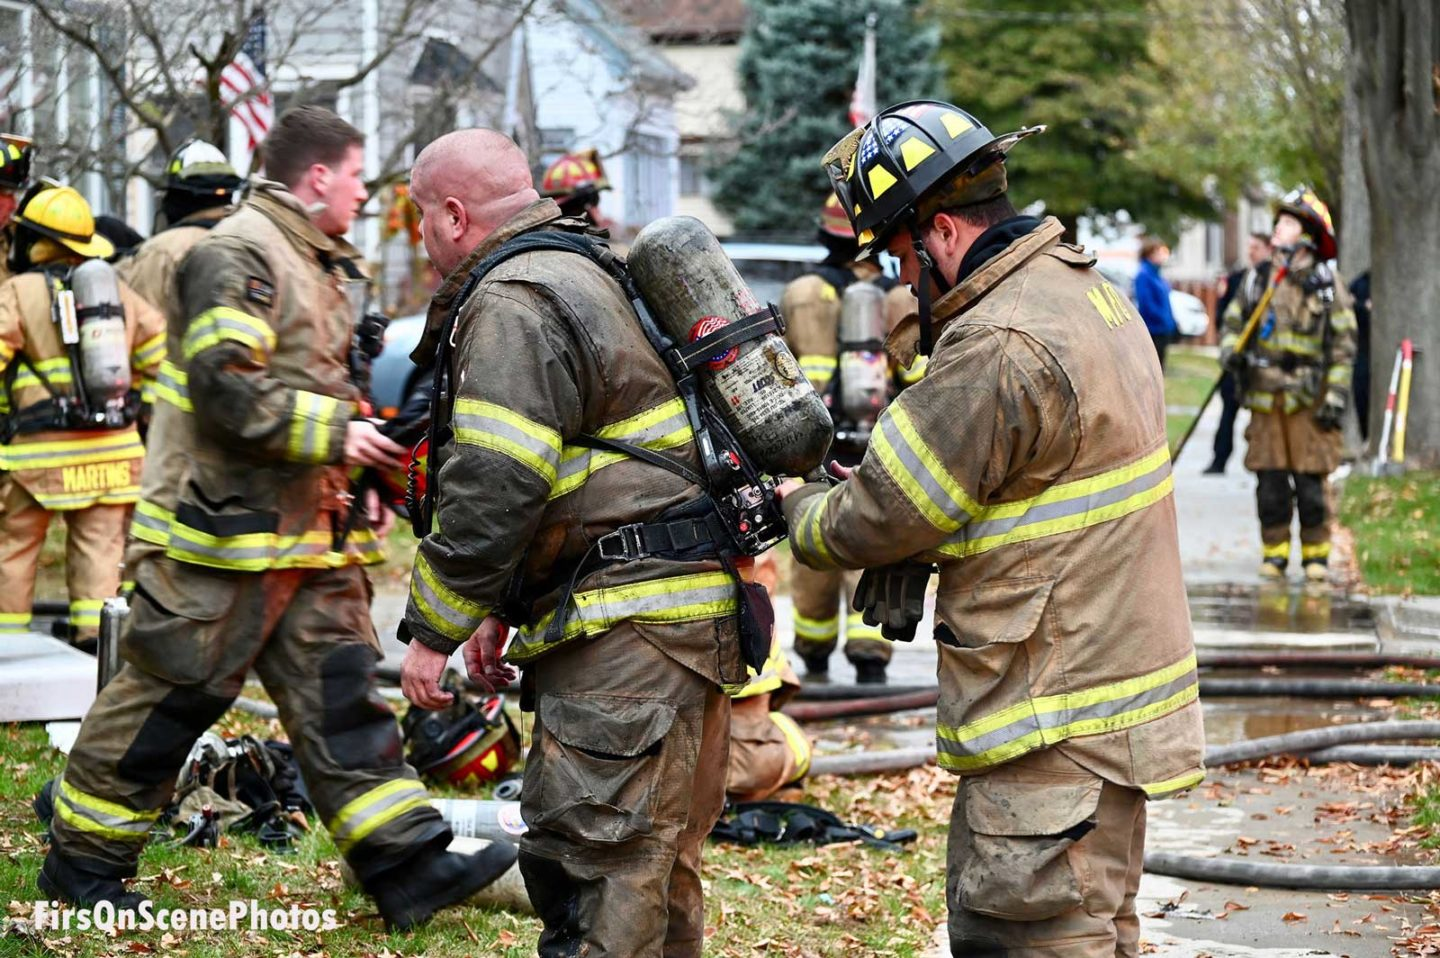 Firefighter helping another with his SCBA at the fire scene